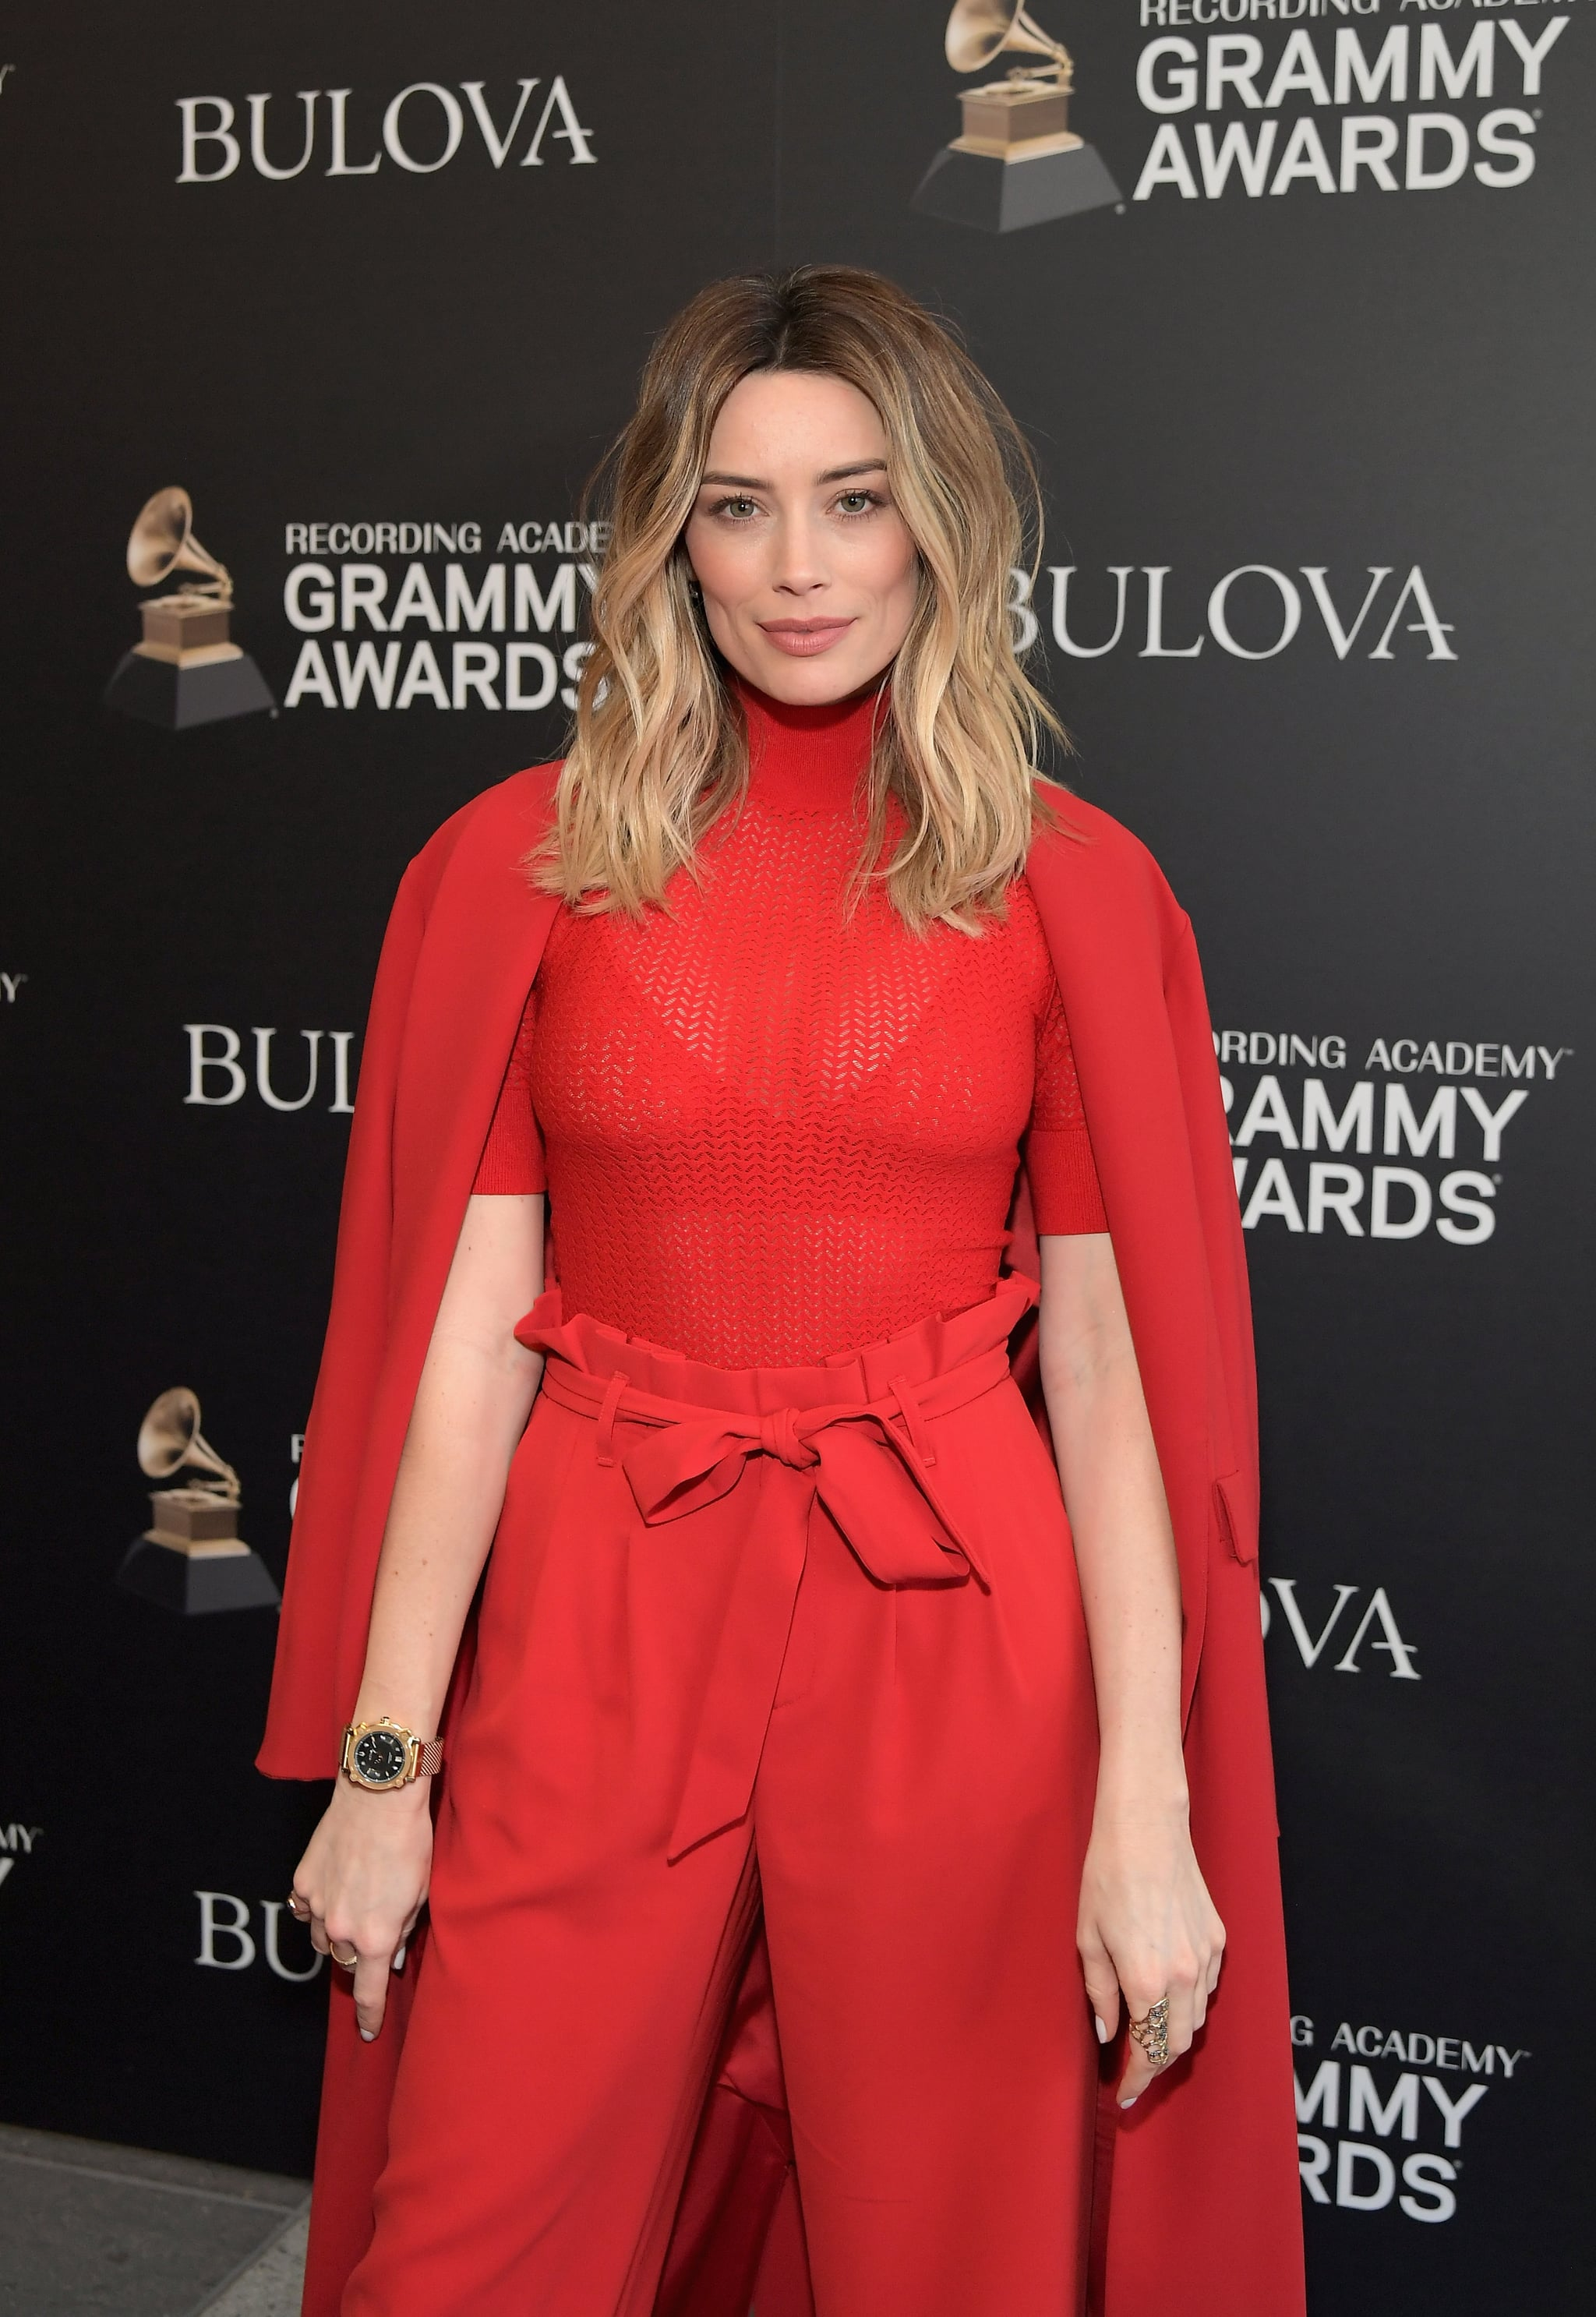 LOS ANGELES, CA - FEBRUARY 09:  Arielle Vandenberg attends the Bulova Grammy Brunch 2019 at The GRAMMY Museum on February 9, 2019 in Los Angeles, California.  (Photo by Charley Gallay/Getty Images for Bulova)